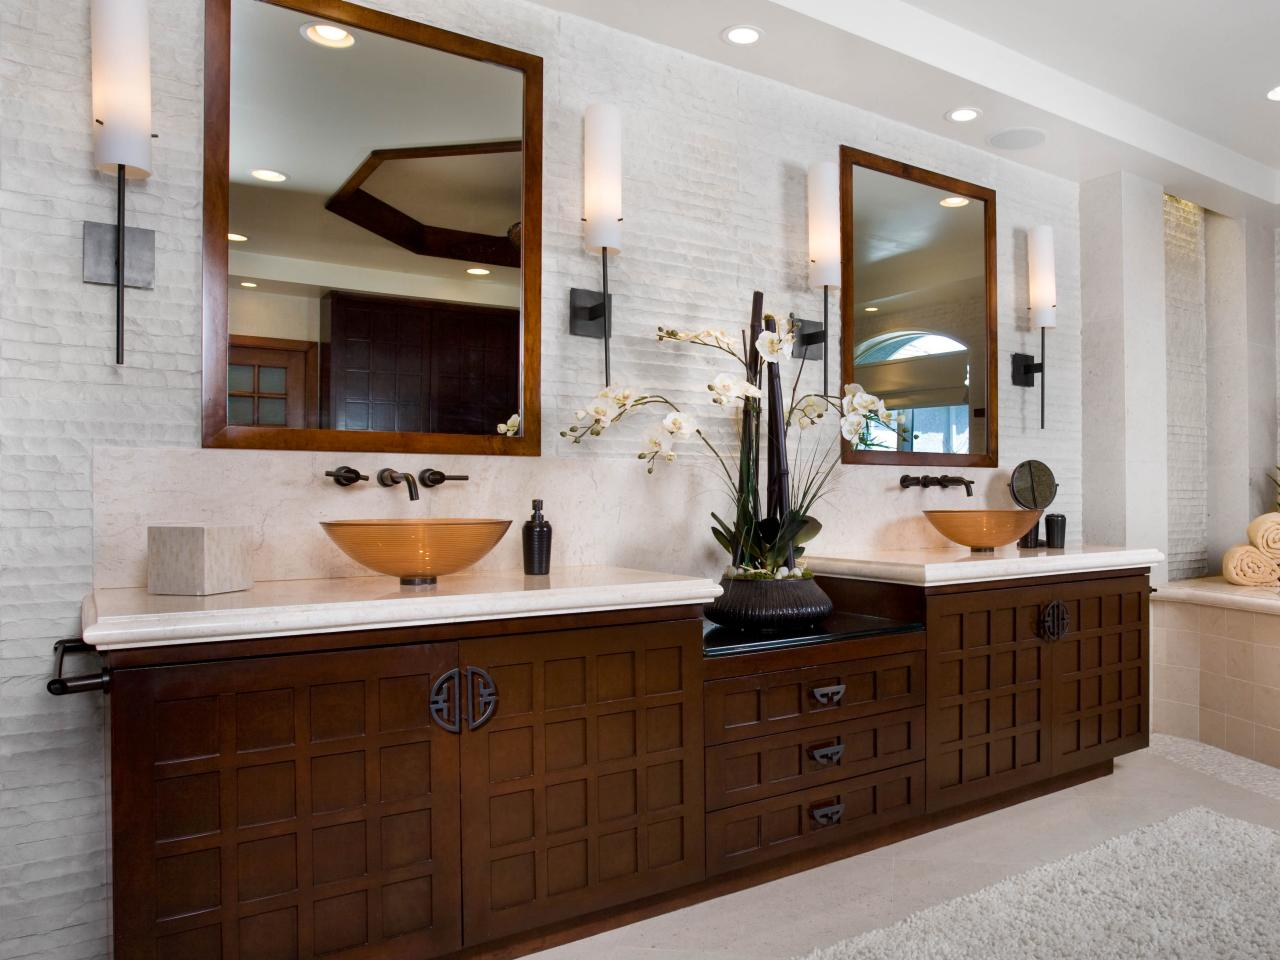 Asian bathroom vanity cabinets - Asian Inspired Contemporary Bathroom